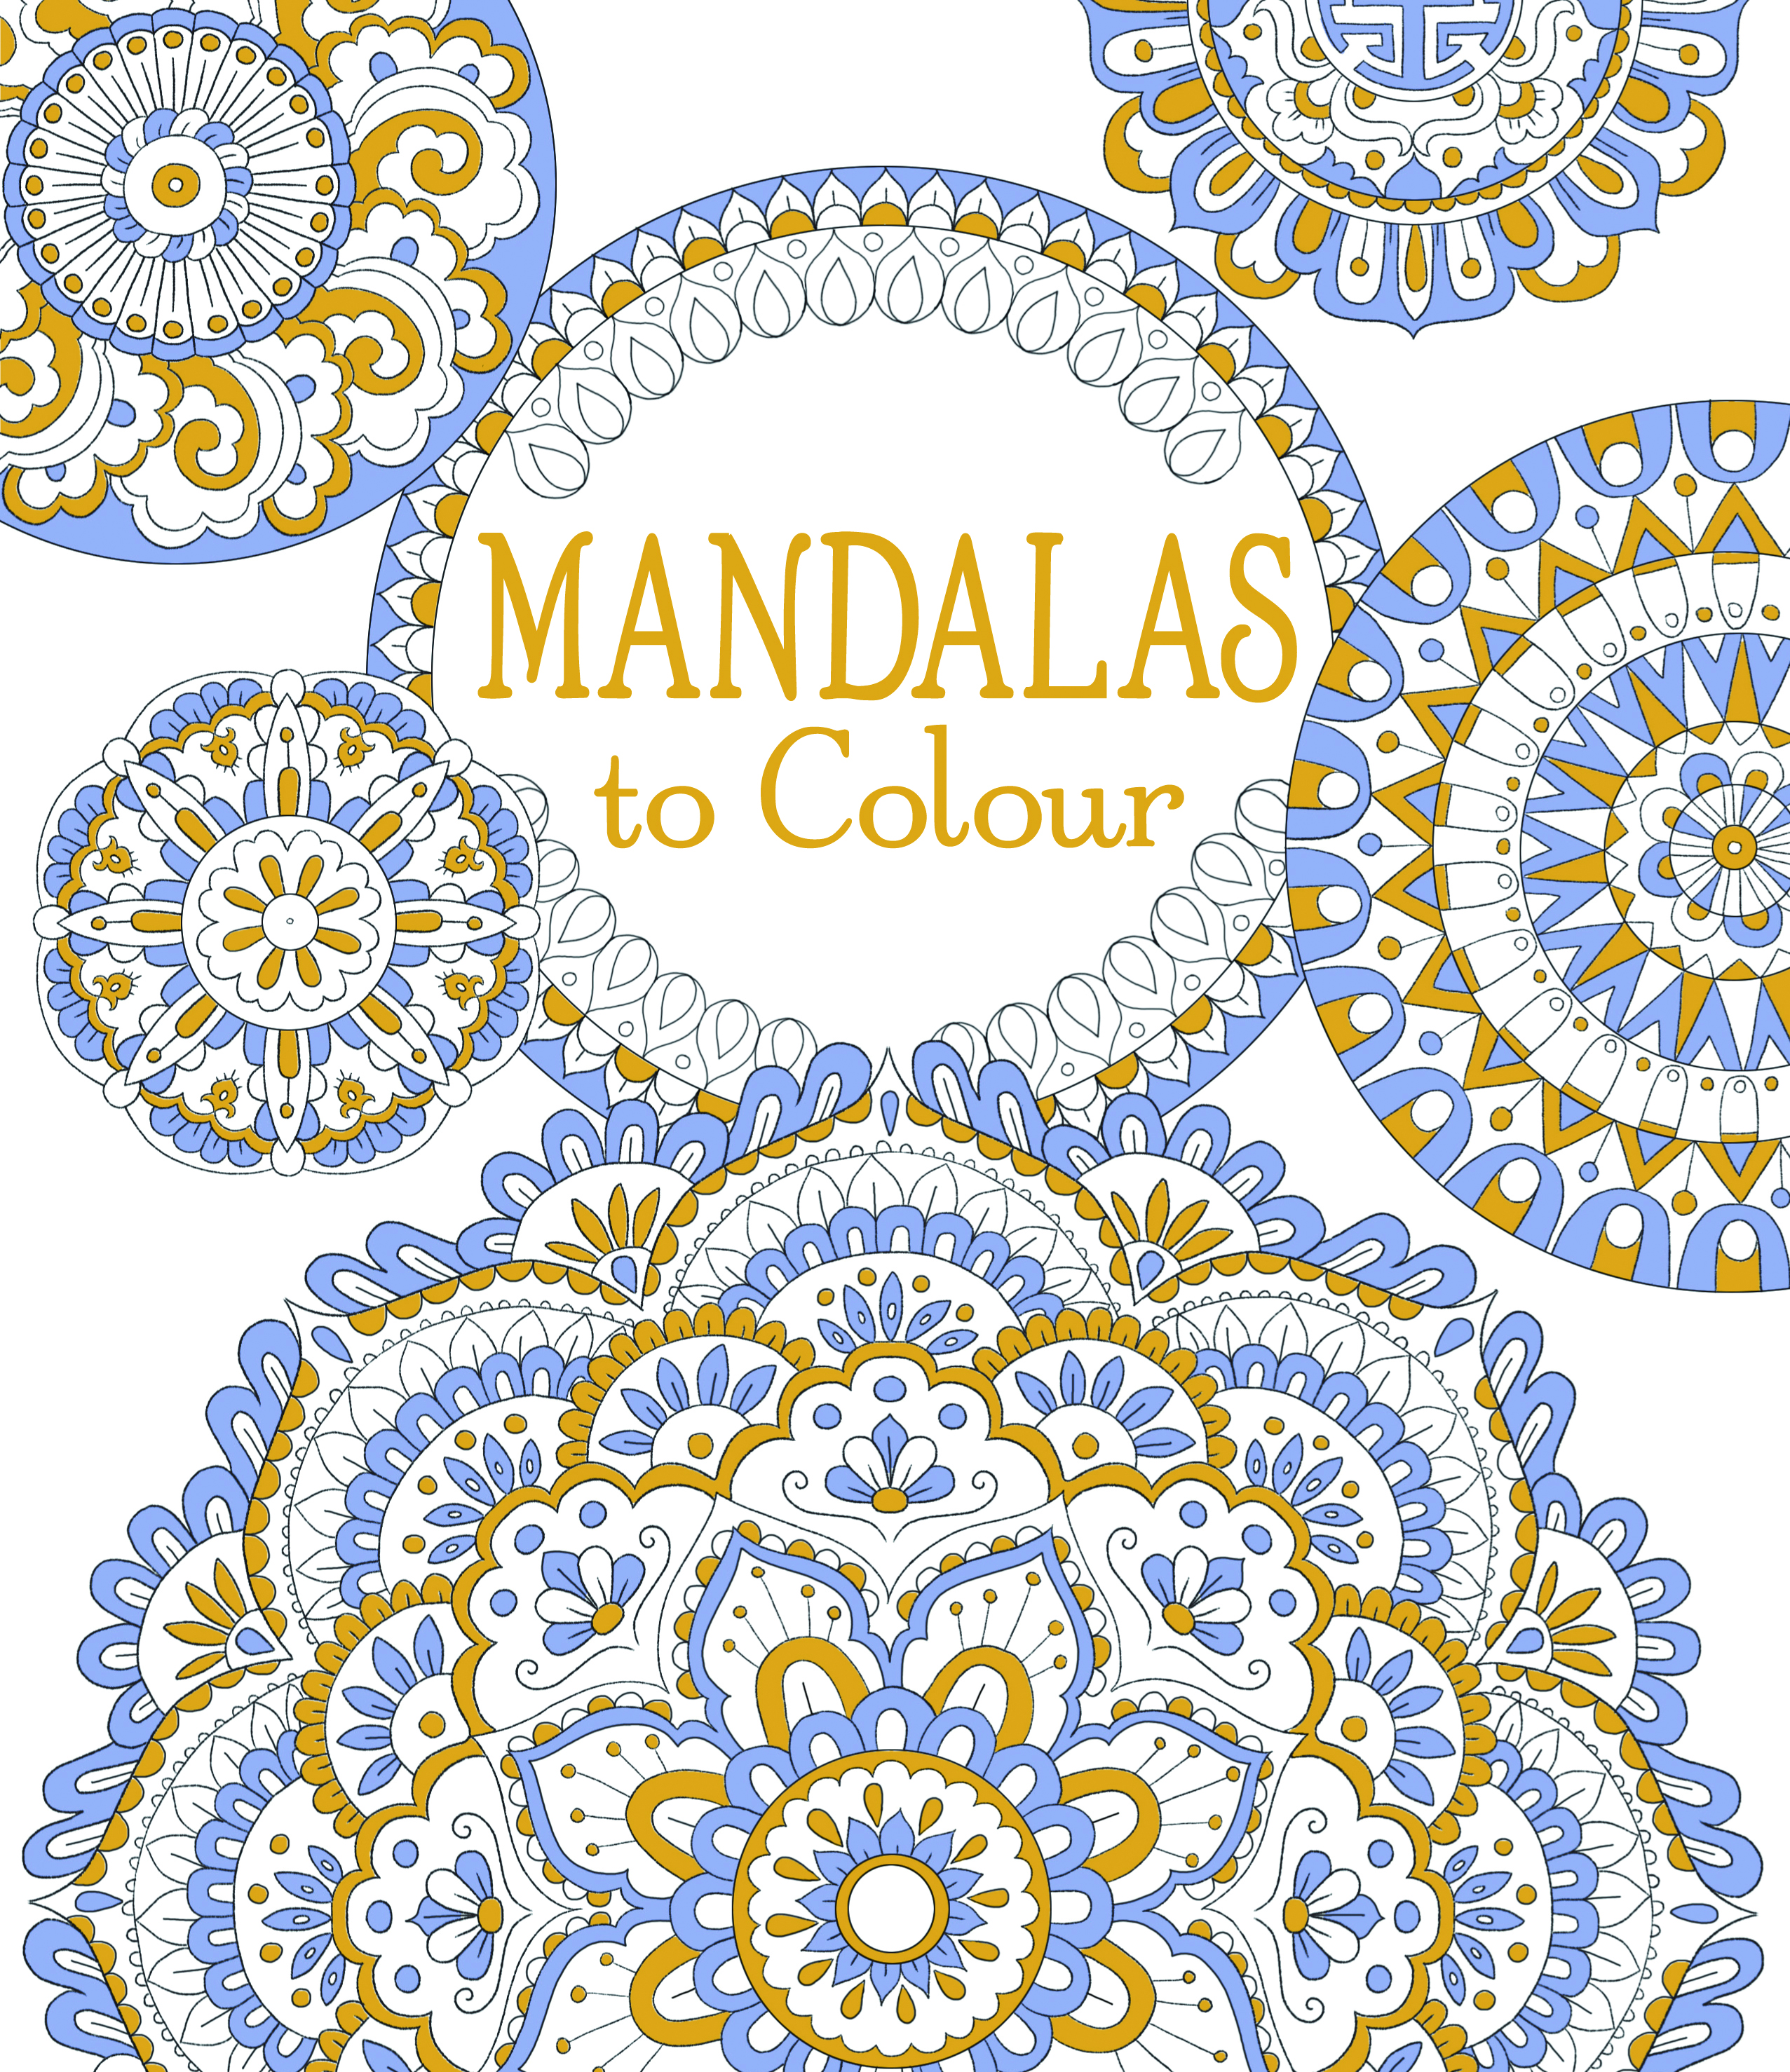 Awesome Coloring Book Wallpaper Small Coloring Book App Flat Bulk Coloring Books Animal Coloring Book Old Animal Coloring Books SoftBig Coloring Books Mandalas To Colour\u201d At Usborne Children\u0027s Books